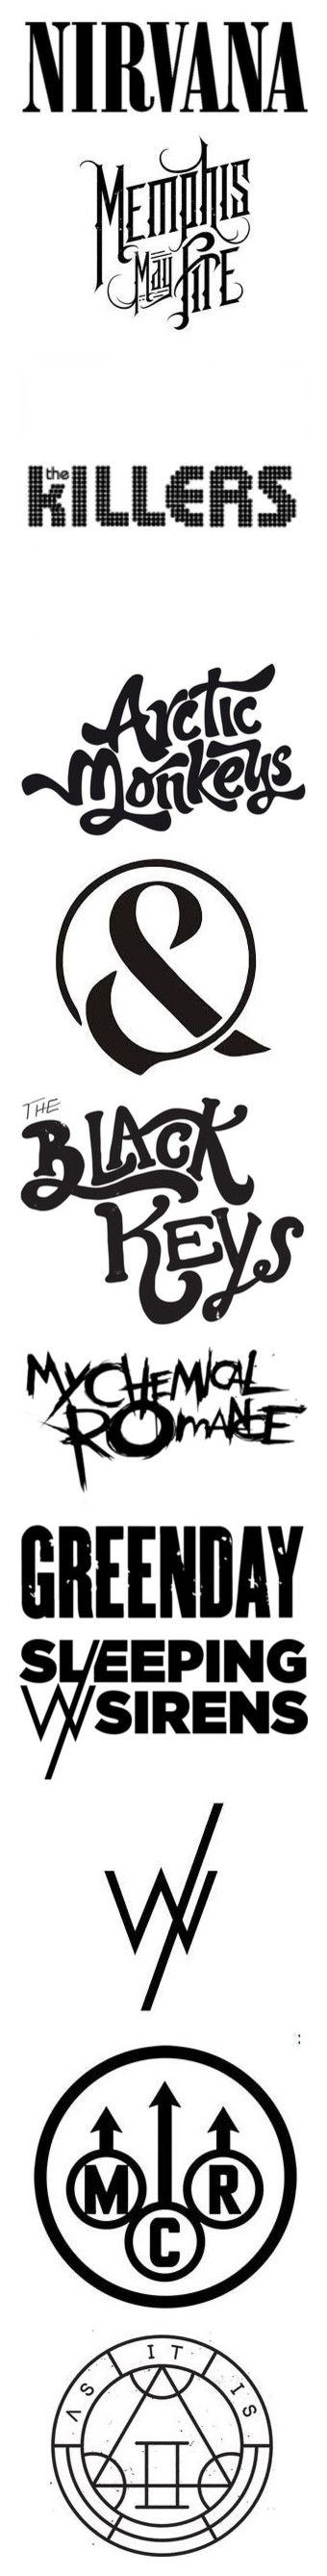 """""""band logos"""" by s8tan on Polyvore featuring fillers, quotes, text, bands, nirvana, phrase, doodle, saying, scribble and words"""